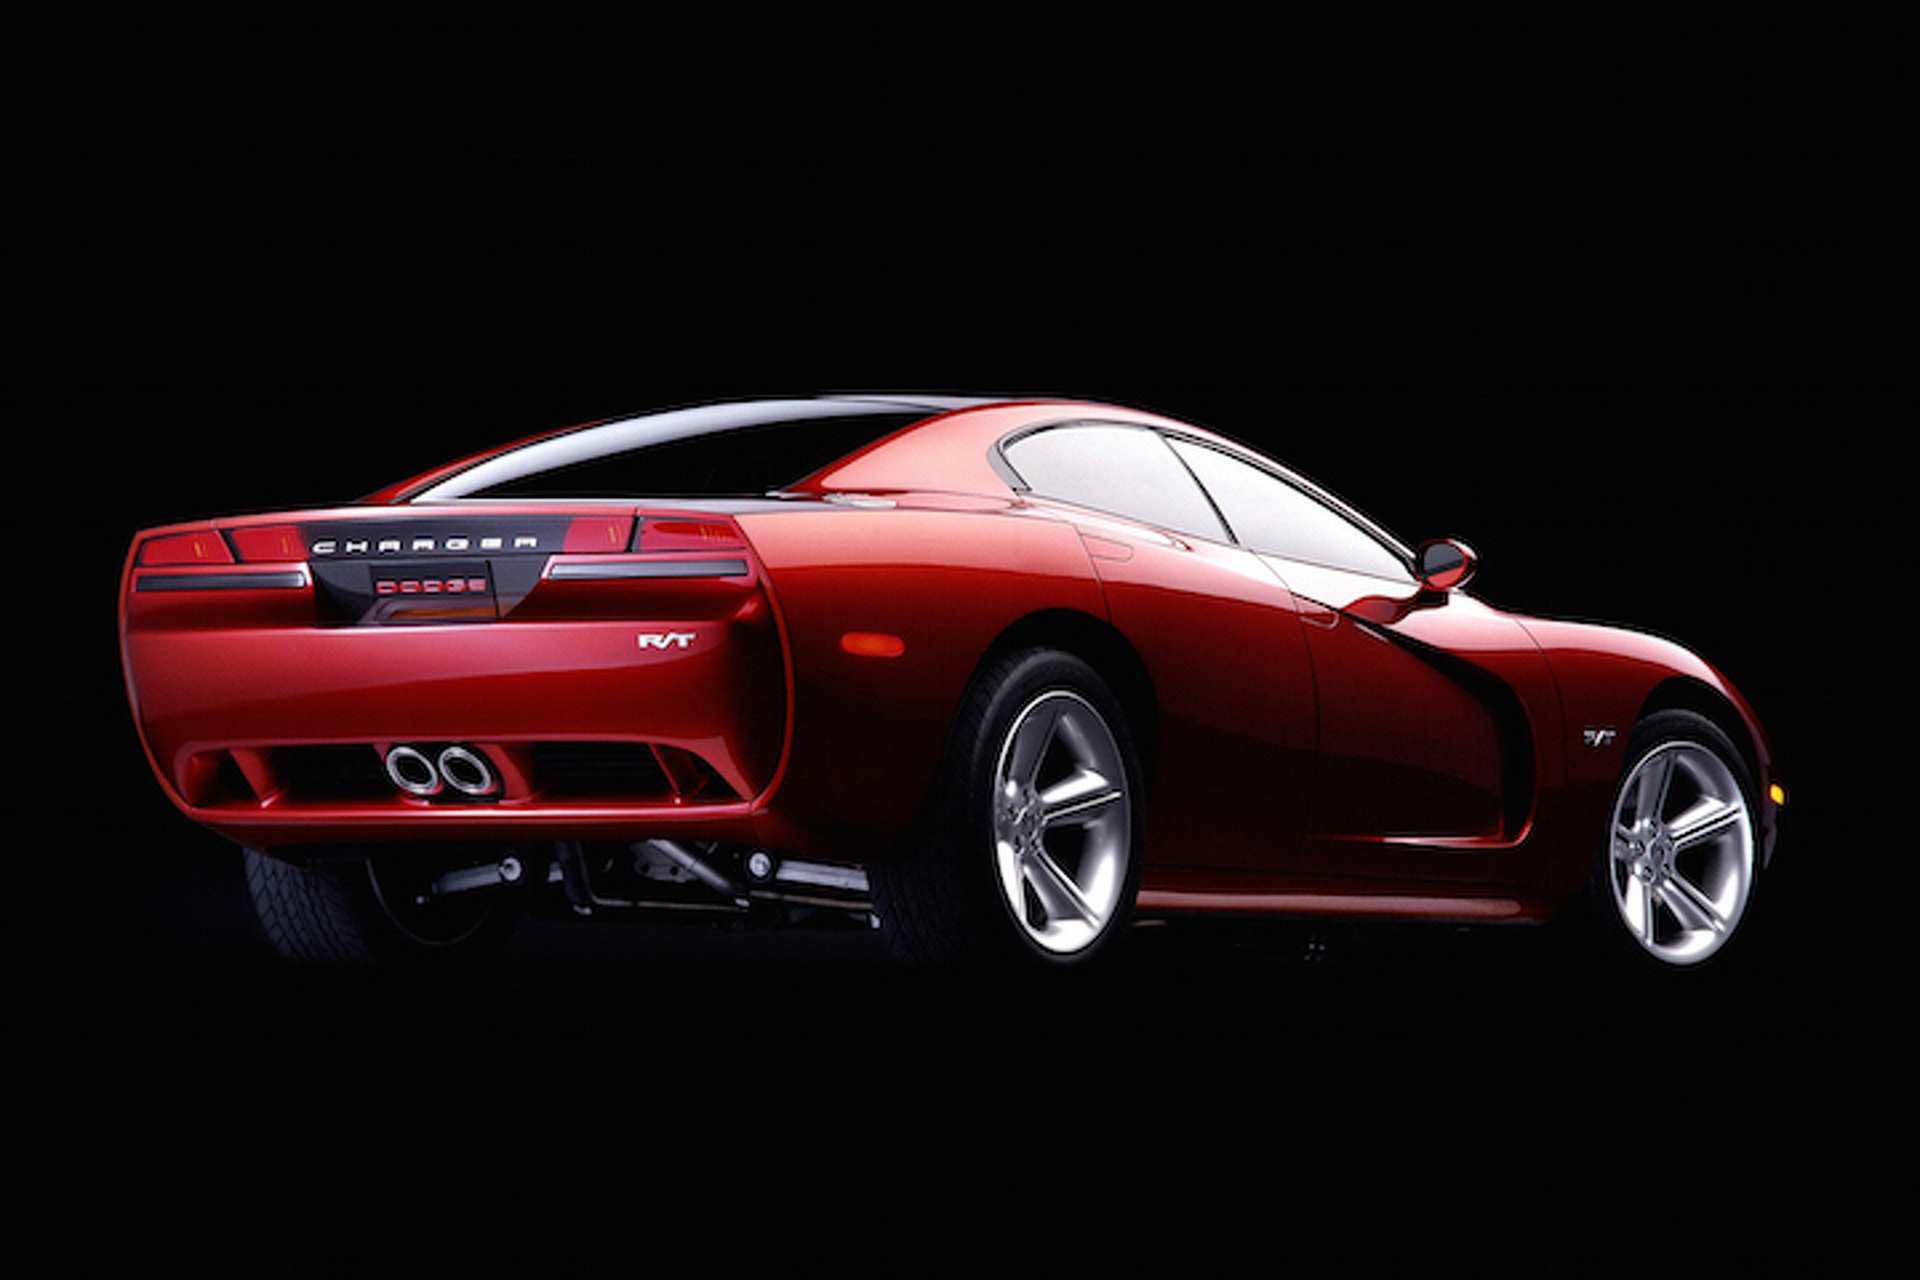 98 Concept of What Will The 2020 Dodge Charger Look Like Exterior with What Will The 2020 Dodge Charger Look Like